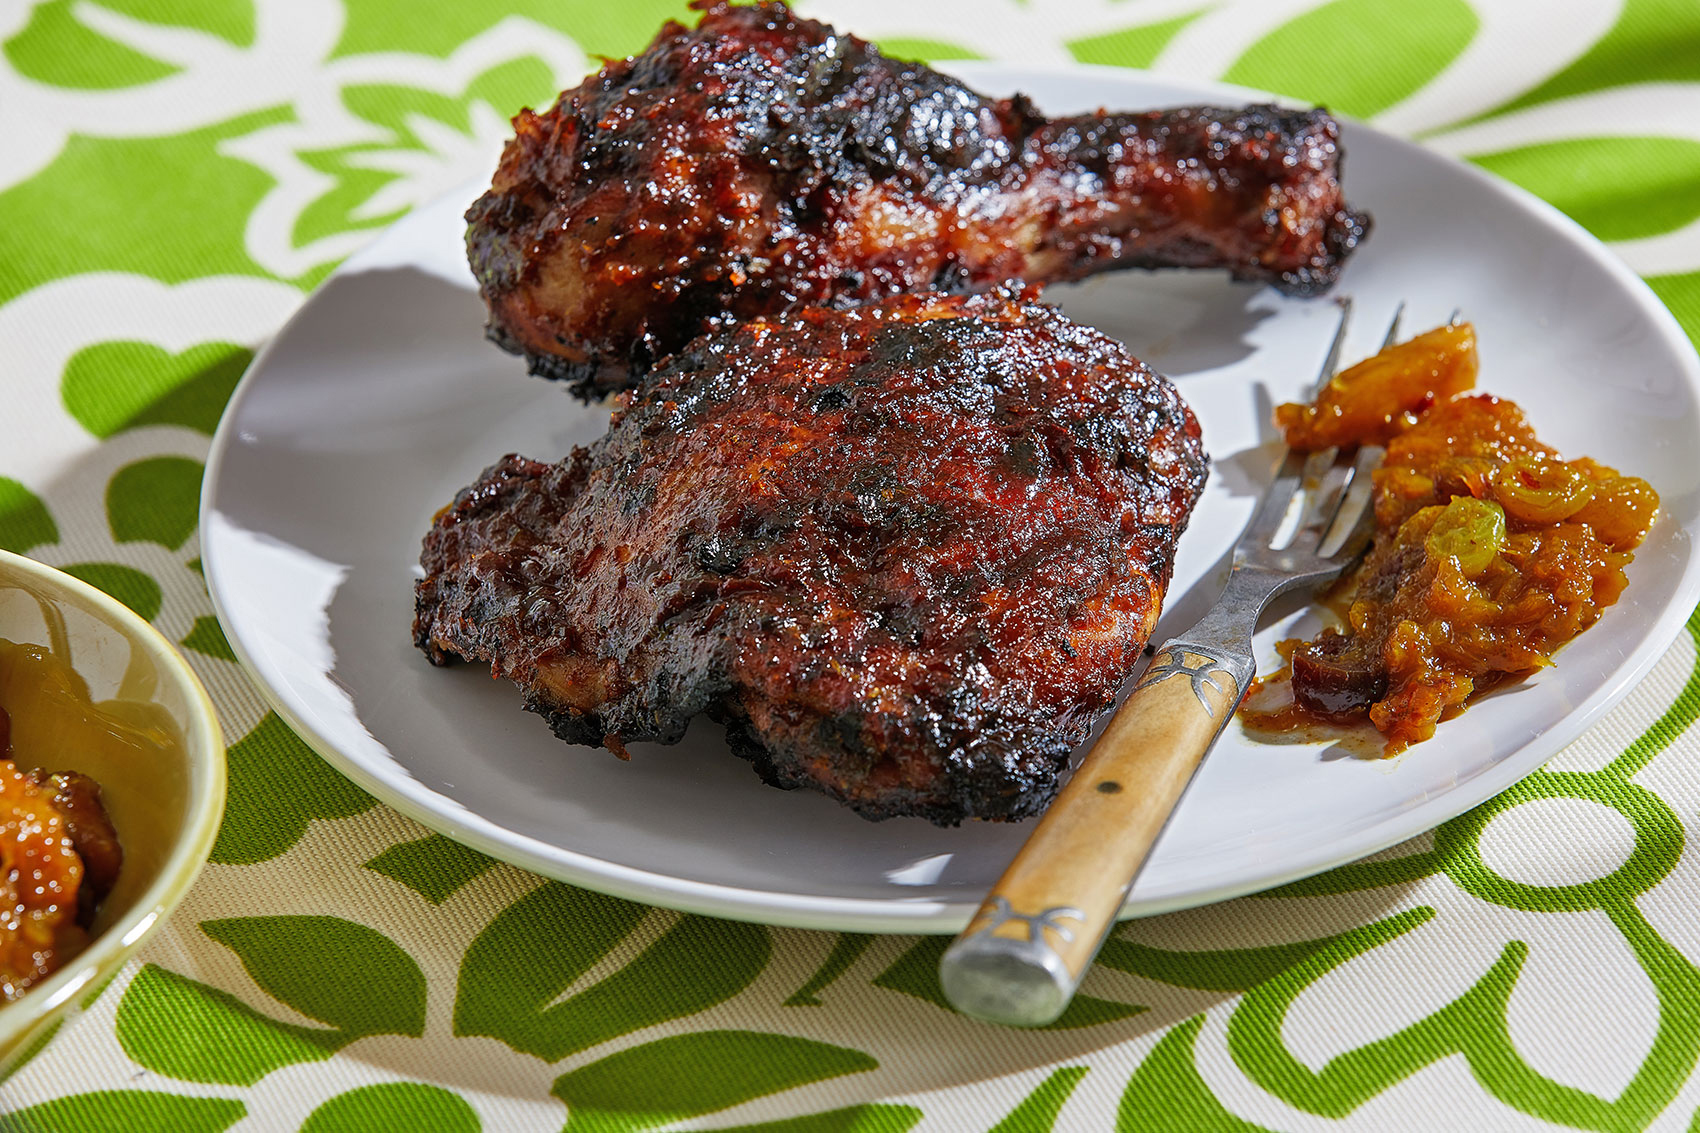 Vibrant marinade makes this jerk chicken stand out